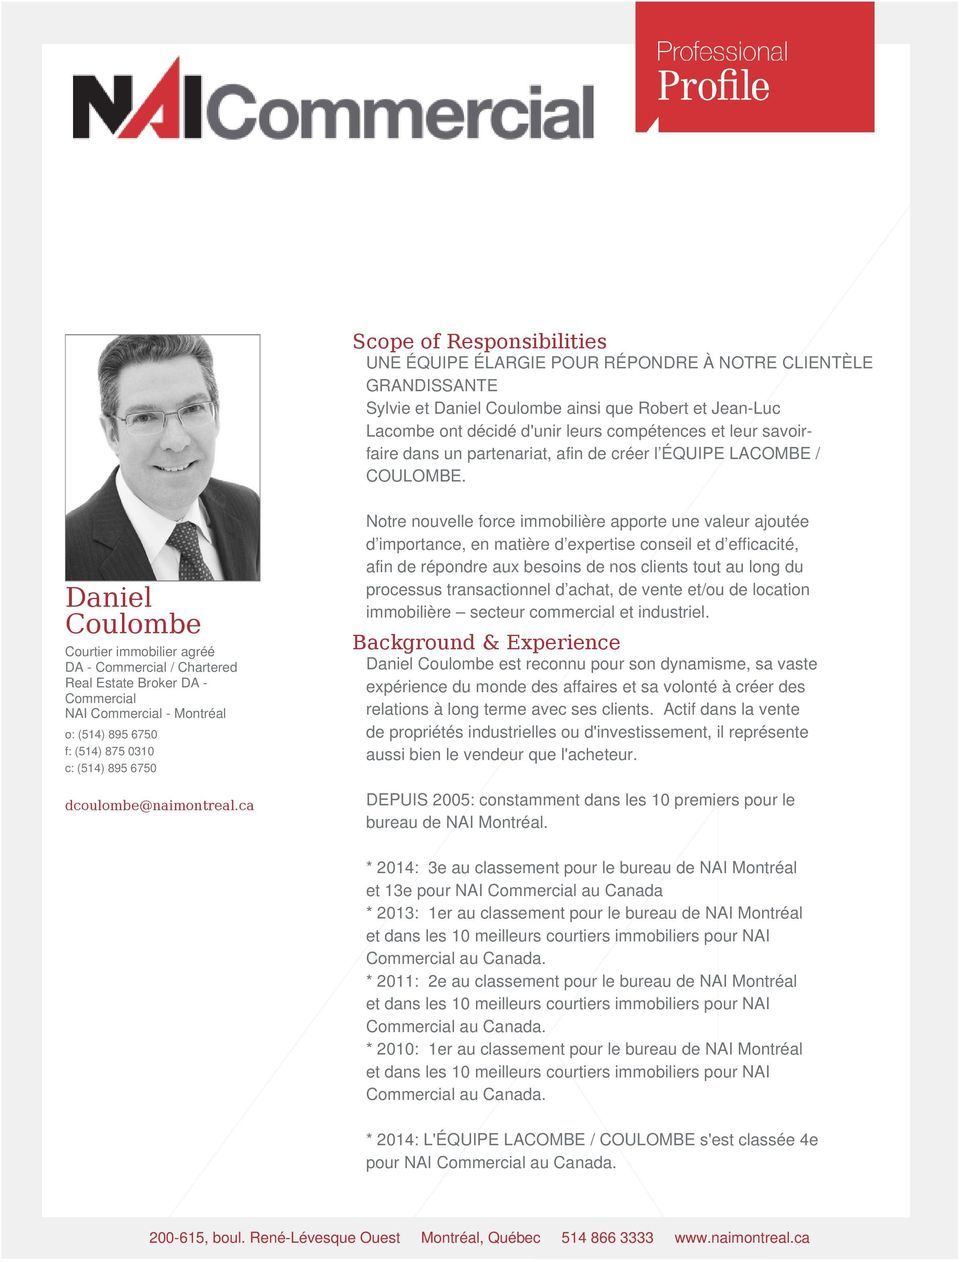 Daniel Coulombe Courtier immobilier agréé DA - Commercial / Chartered Real Estate Broker DA - Commercial NAI Commercial - Montréal o: (514) 895 6750 f: (514) 875 0310 c: (514) 895 6750